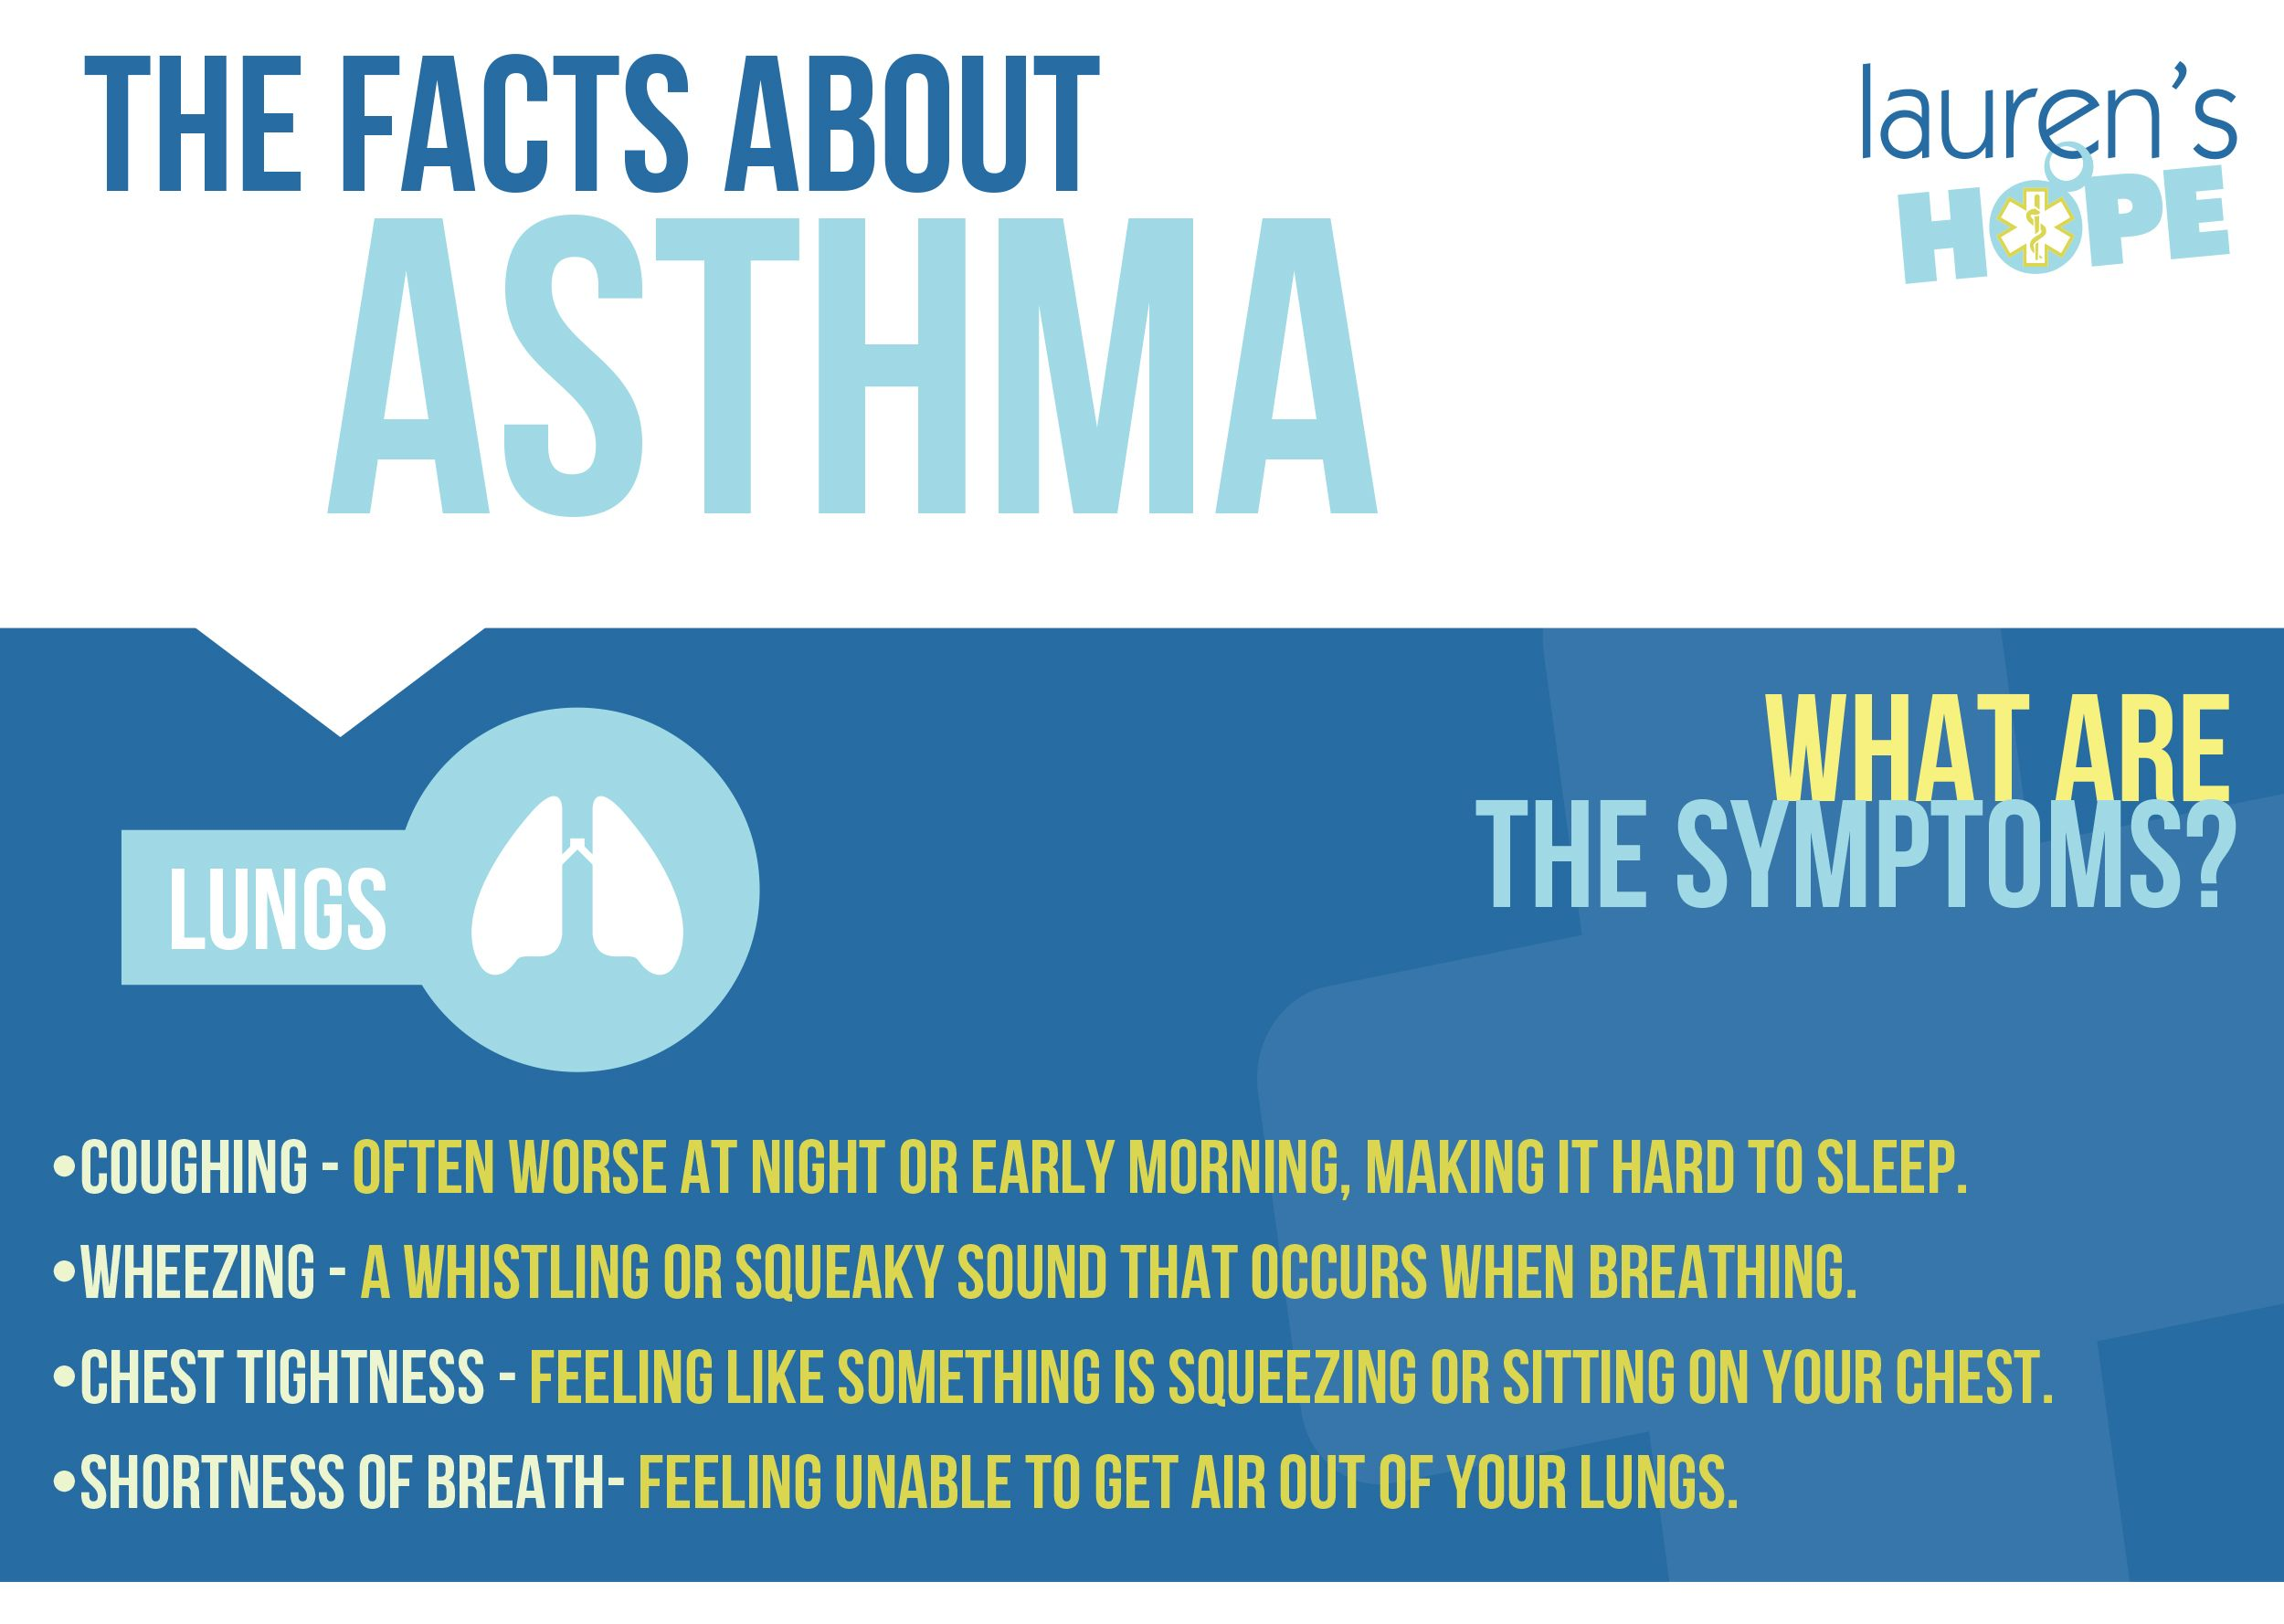 Coughing Wheezing Chest Tightness And Shortness Of Breath Are All Common Signs Of Asthma Lungs Infographic Allergy Allergies